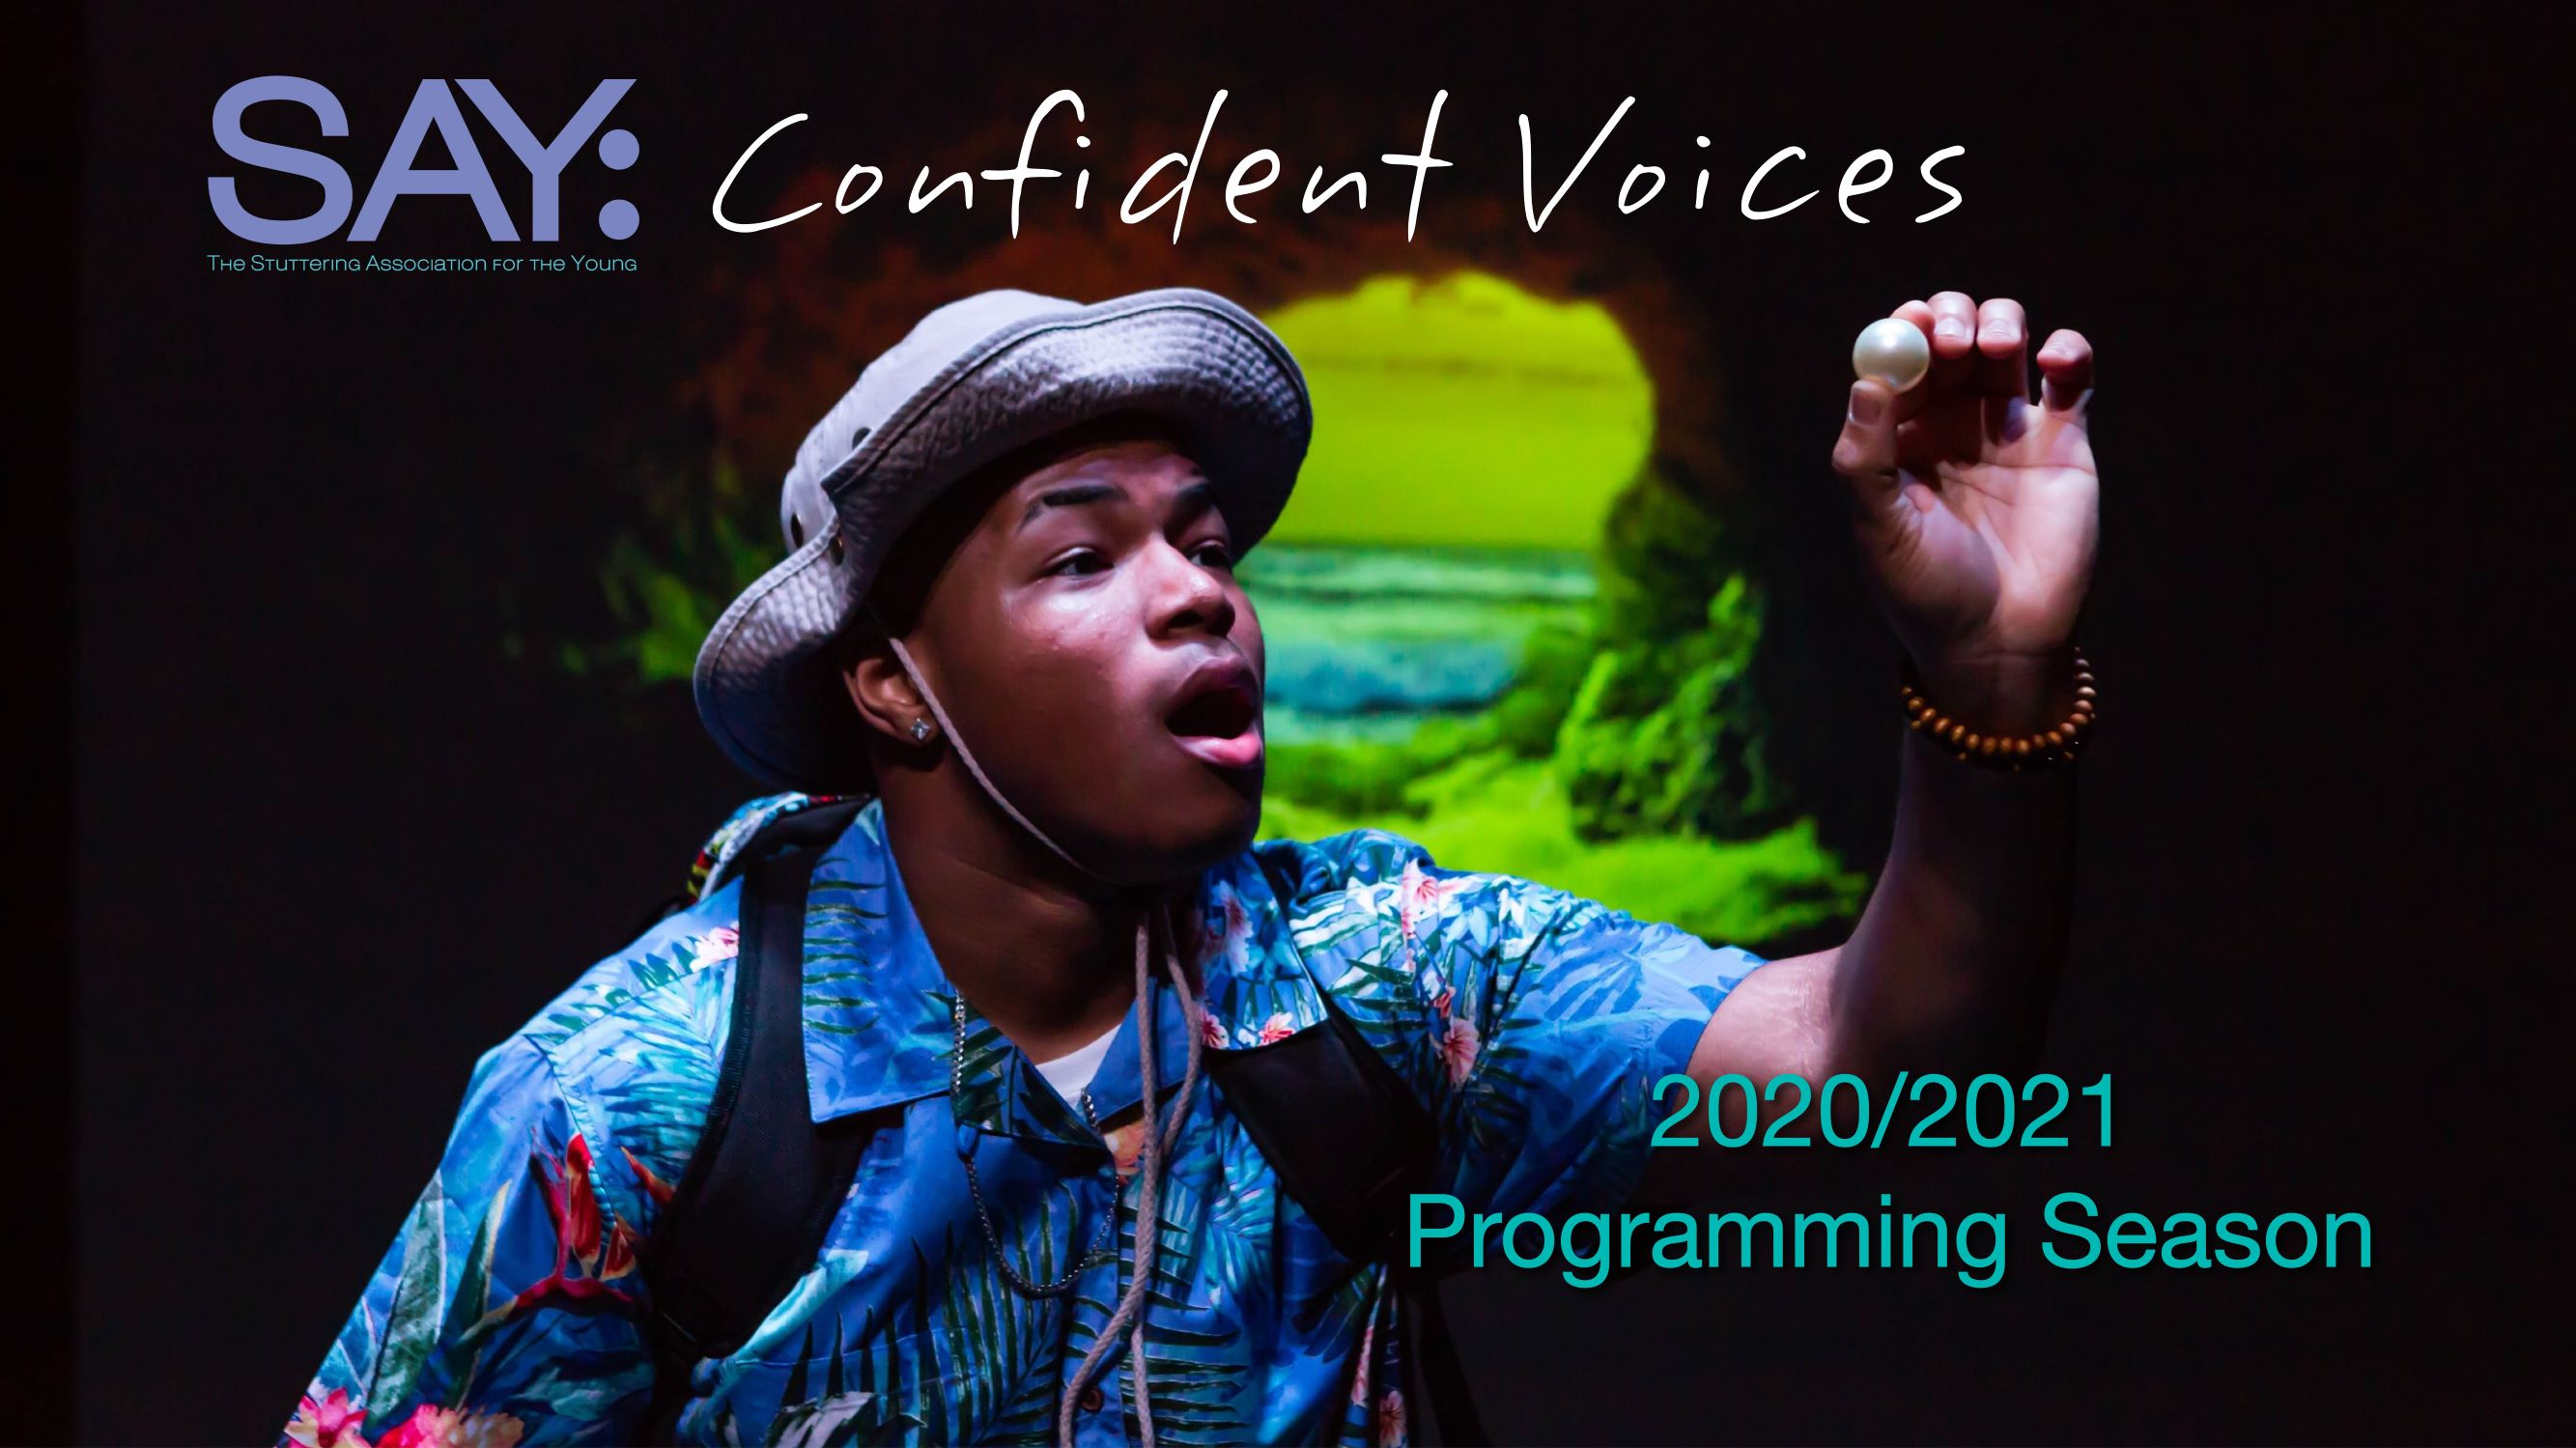 SAY: Confident Voices NYC